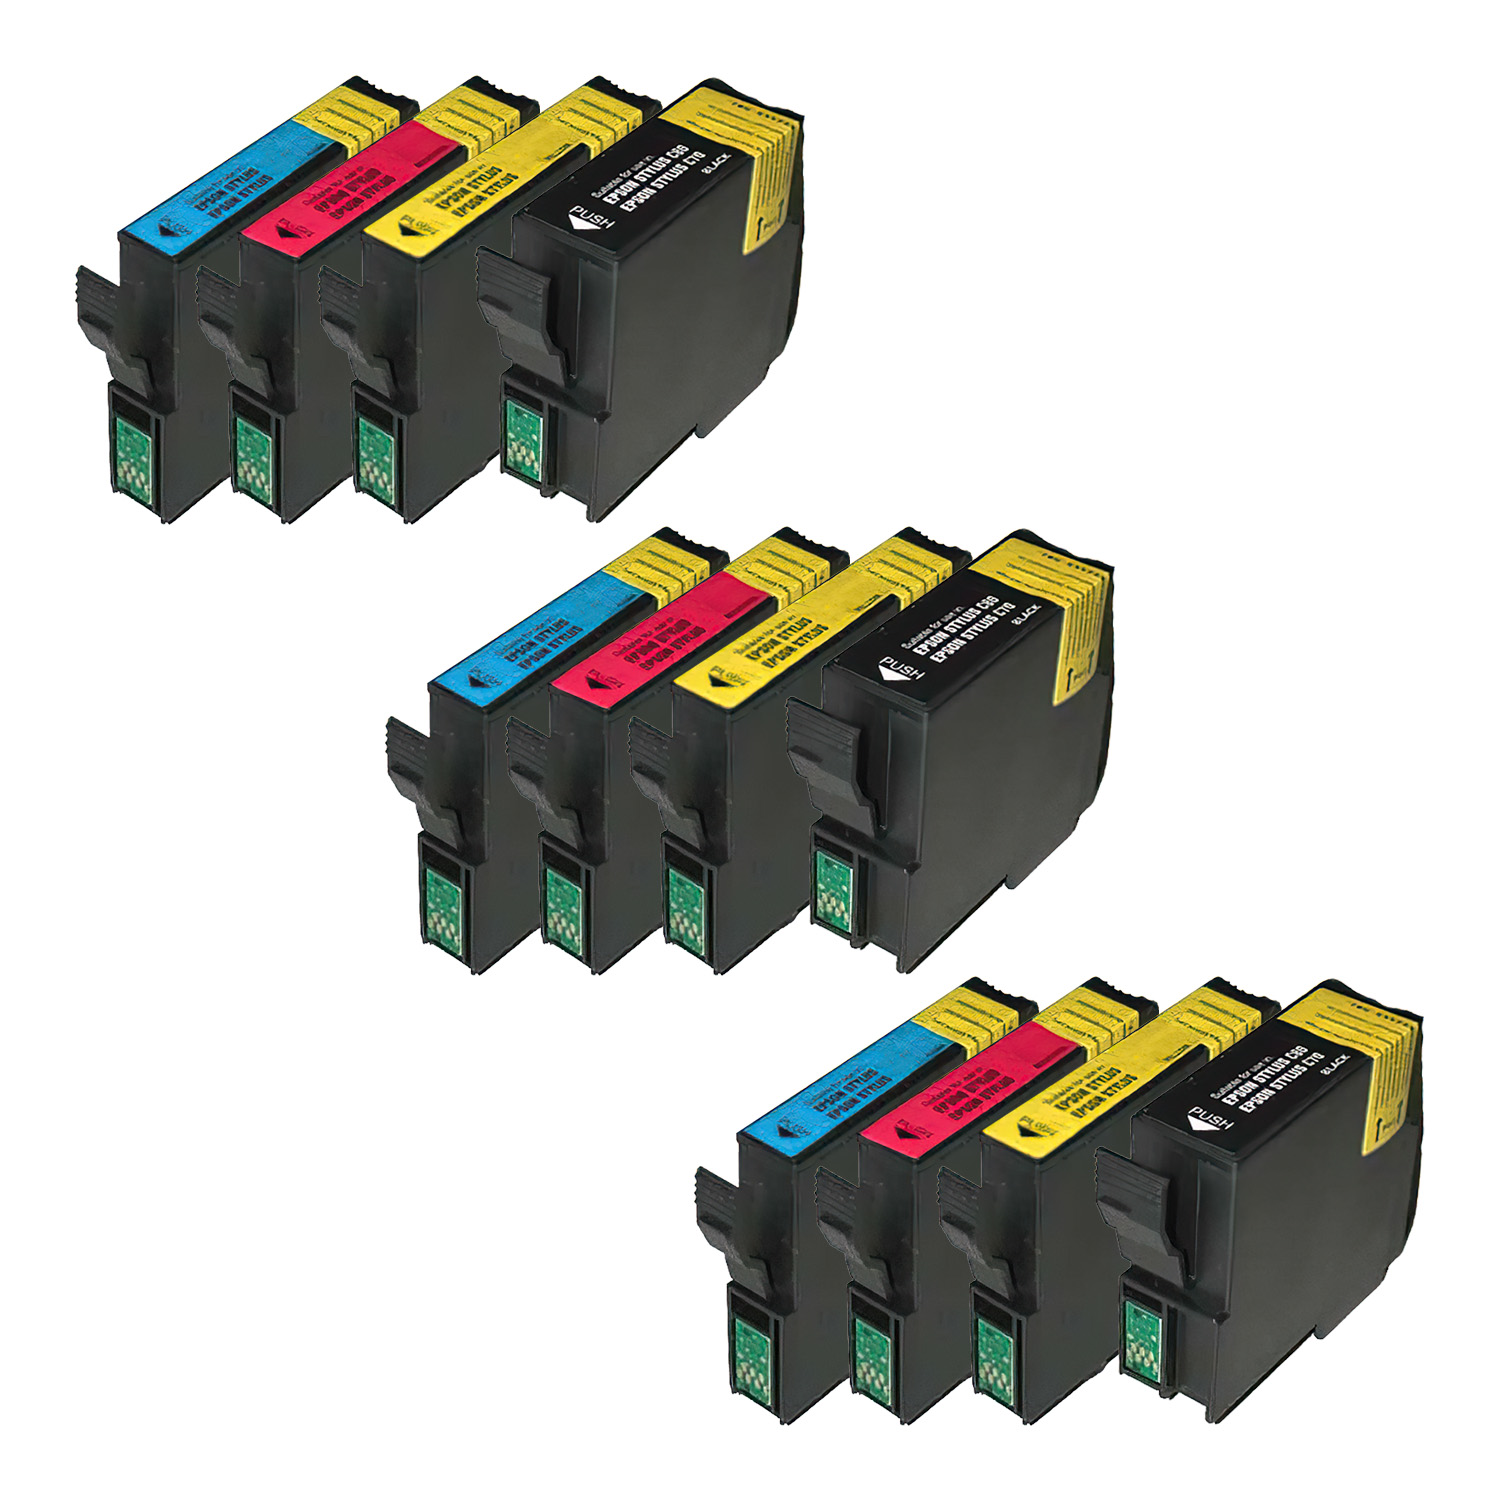 Remanufactured Epson 42-32 Inkjet Pack - 12 Cartridges